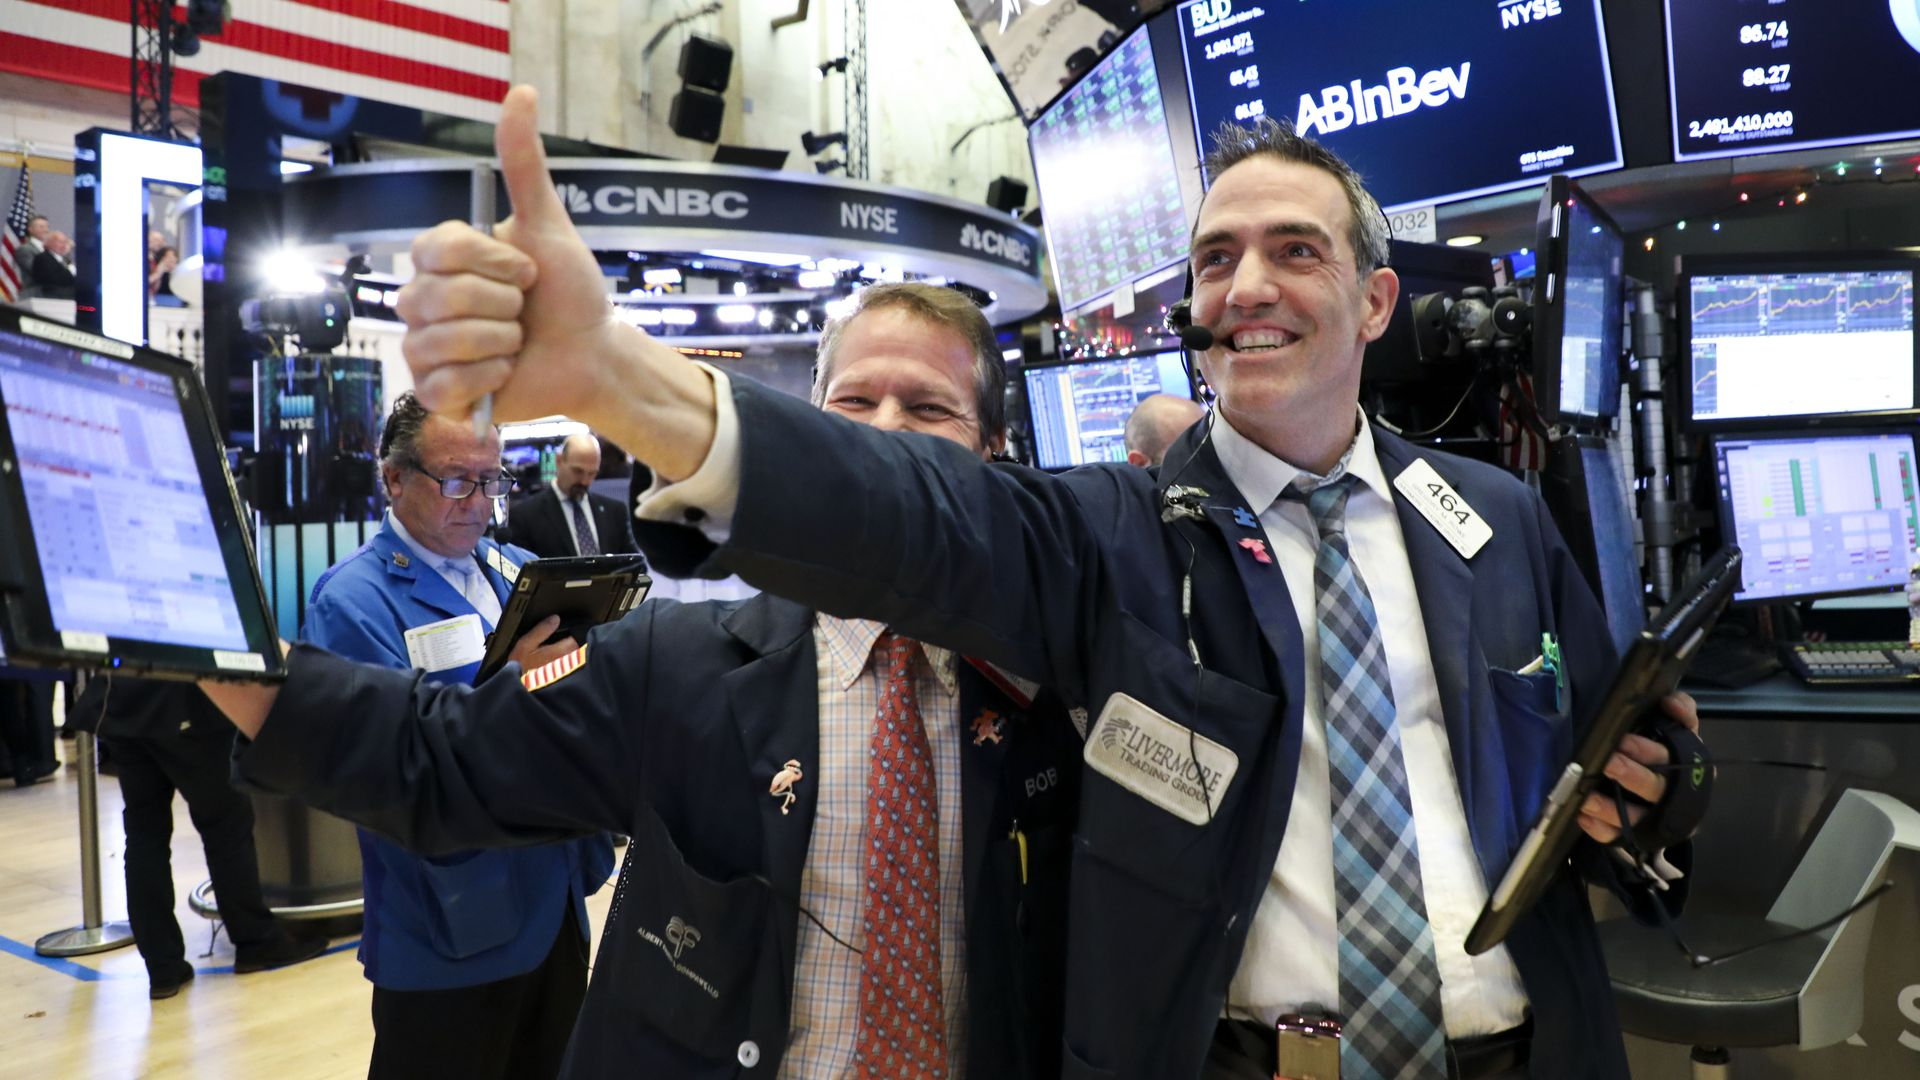 Traders work at the NYSE in New York